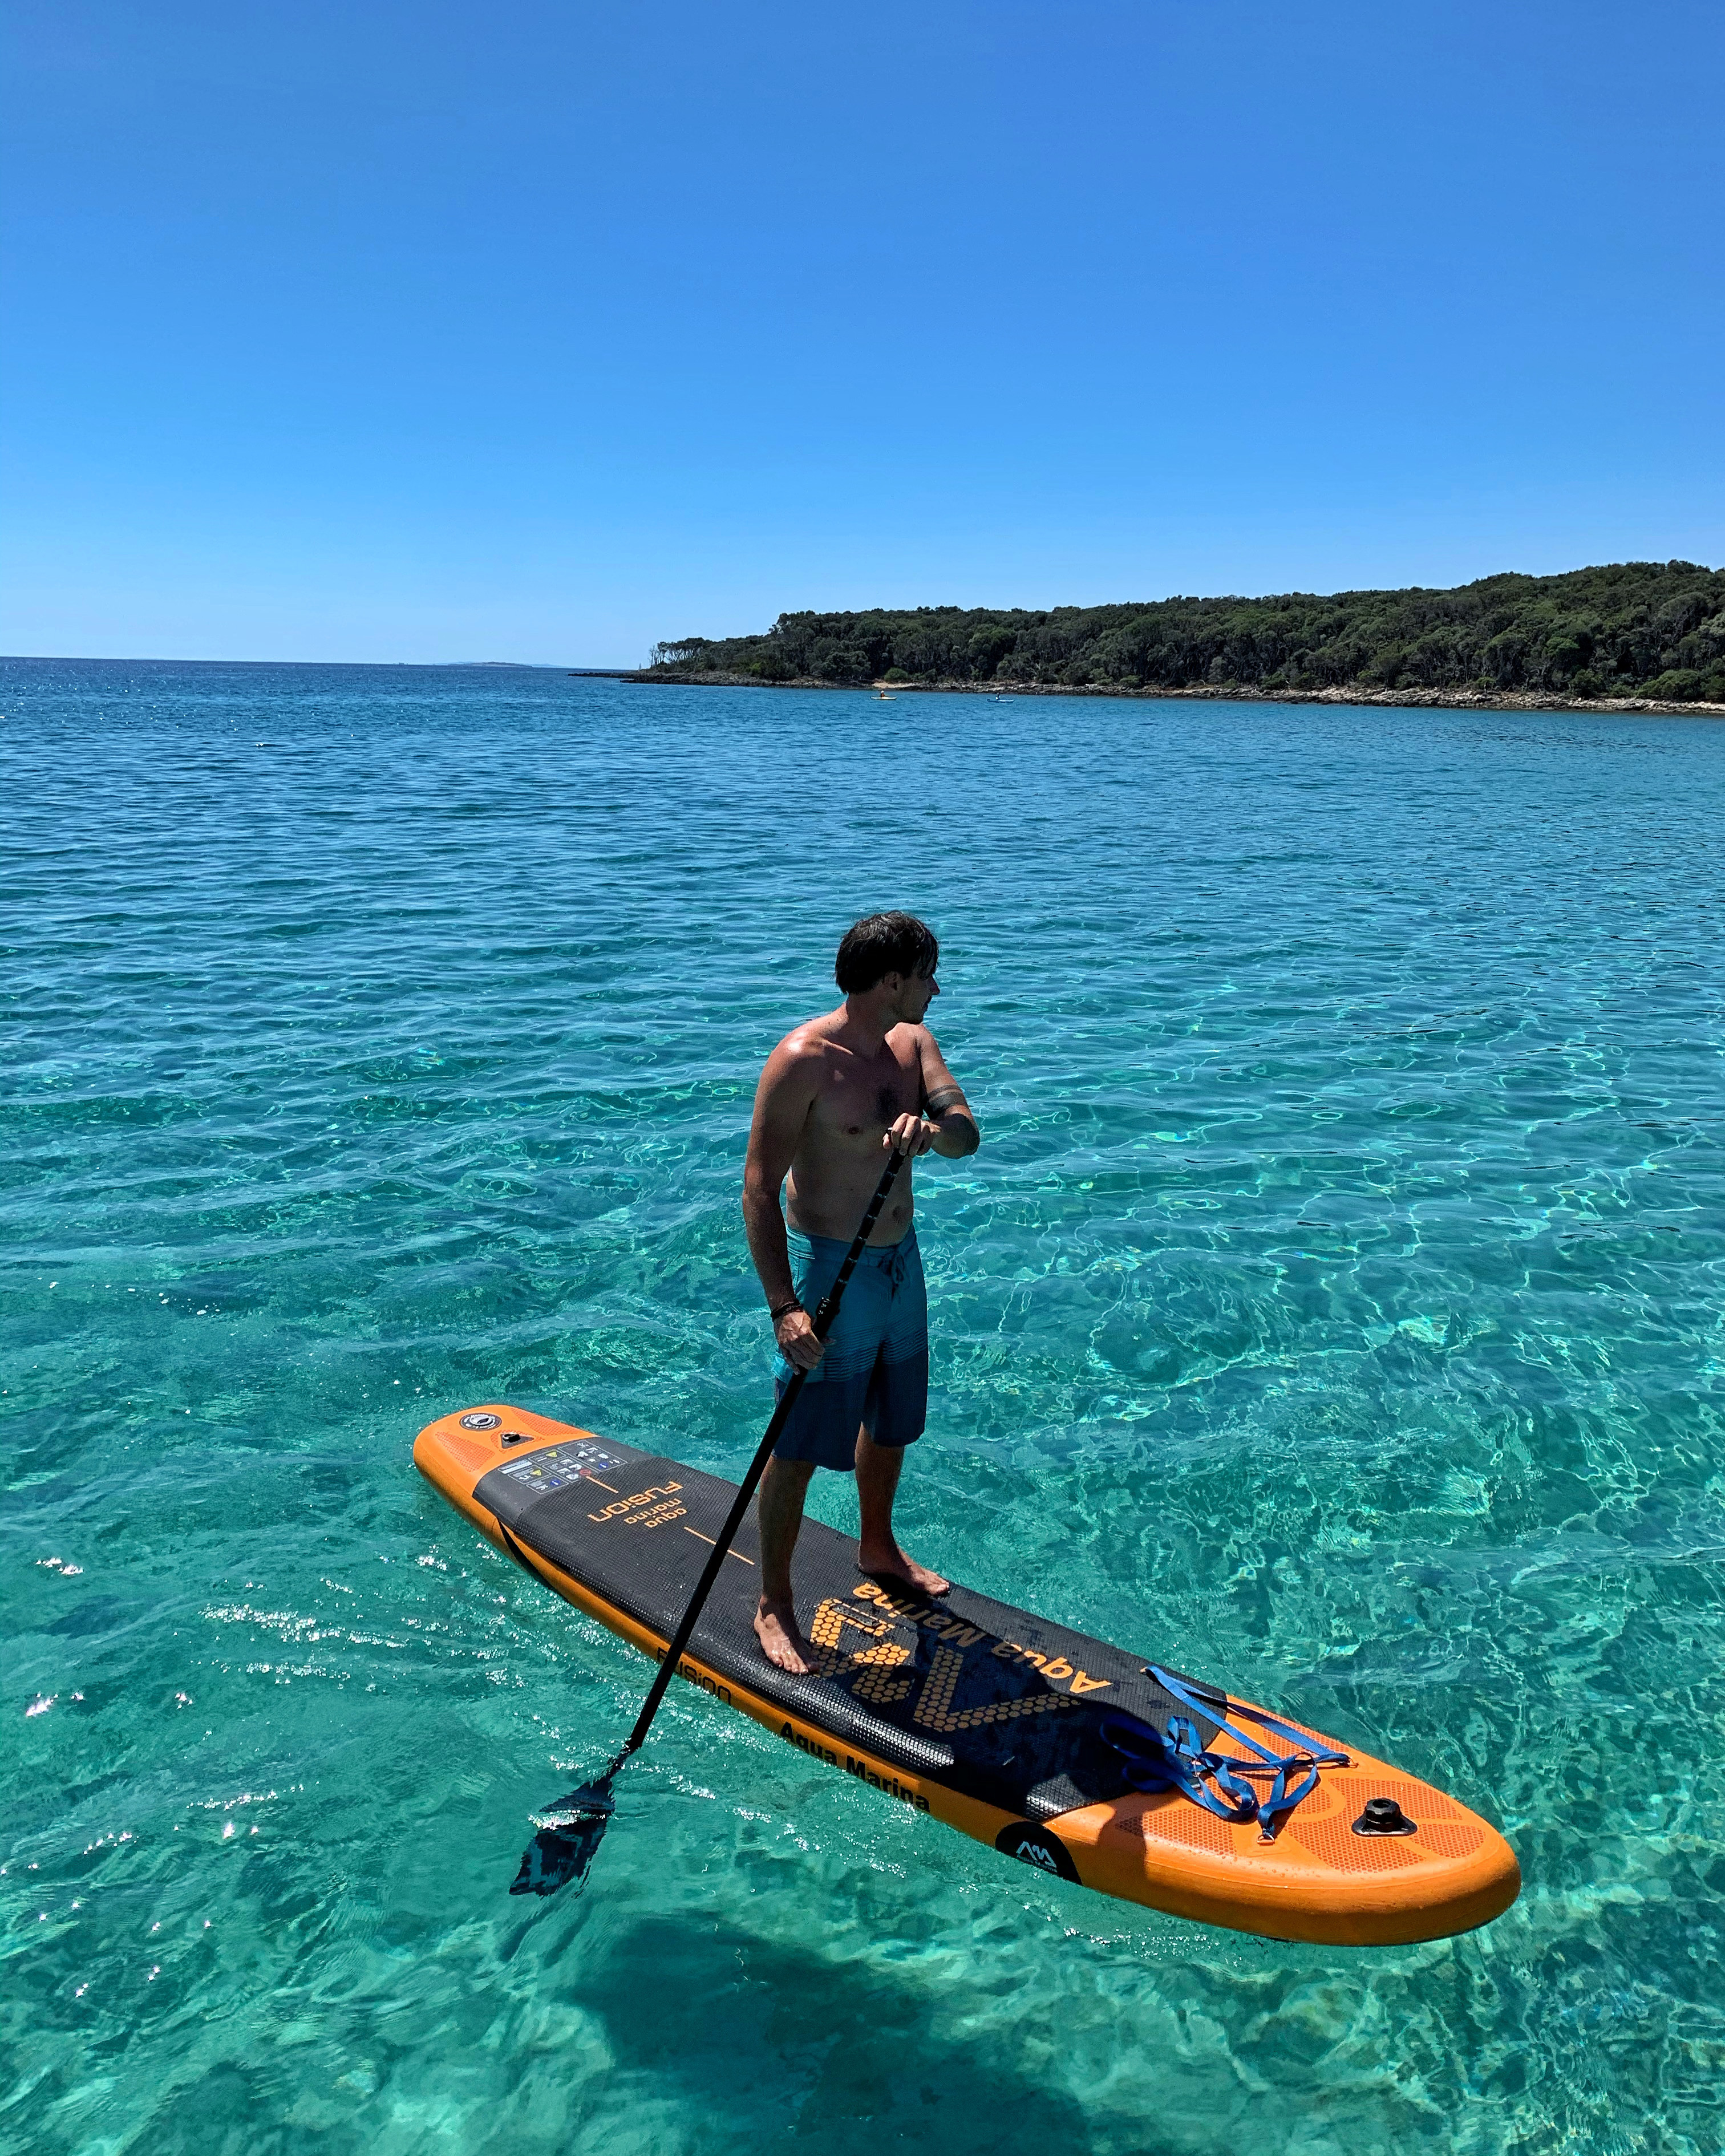 man on orange stand up paddleboard in clear turquoise waters near cres island croatia